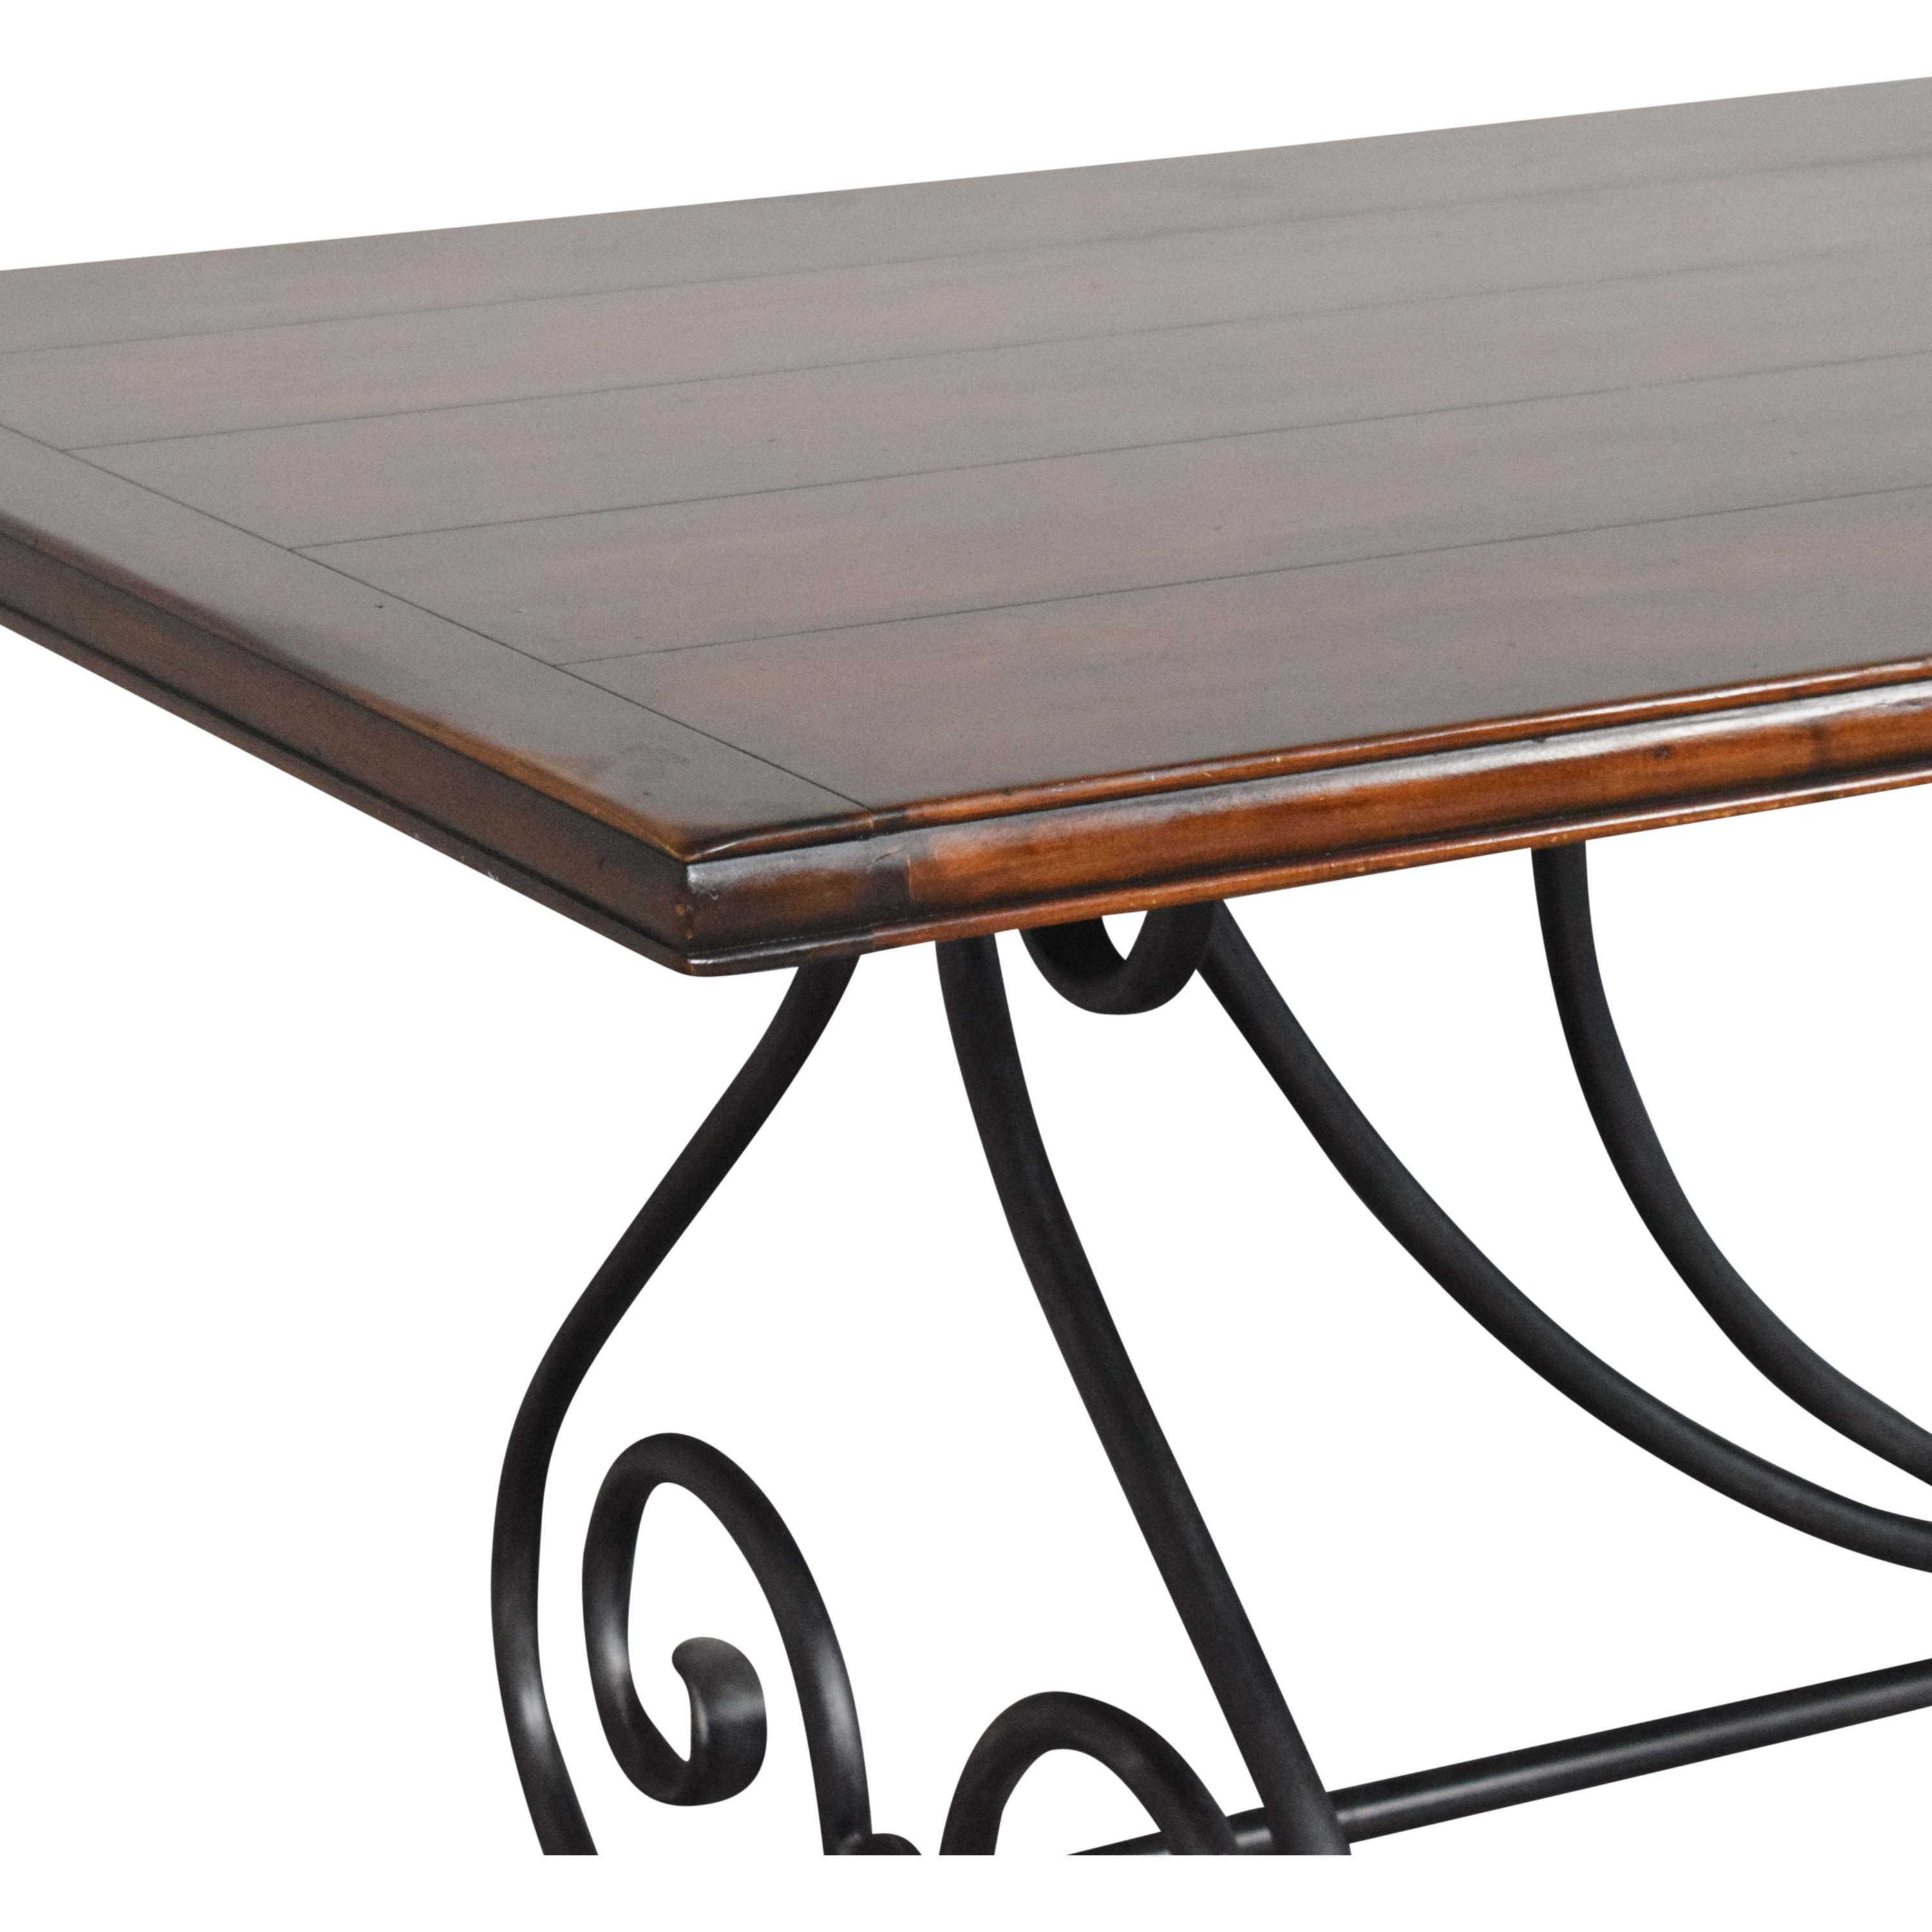 Theodore Alexander Theodore Alexander Rustic Dining Table second hand